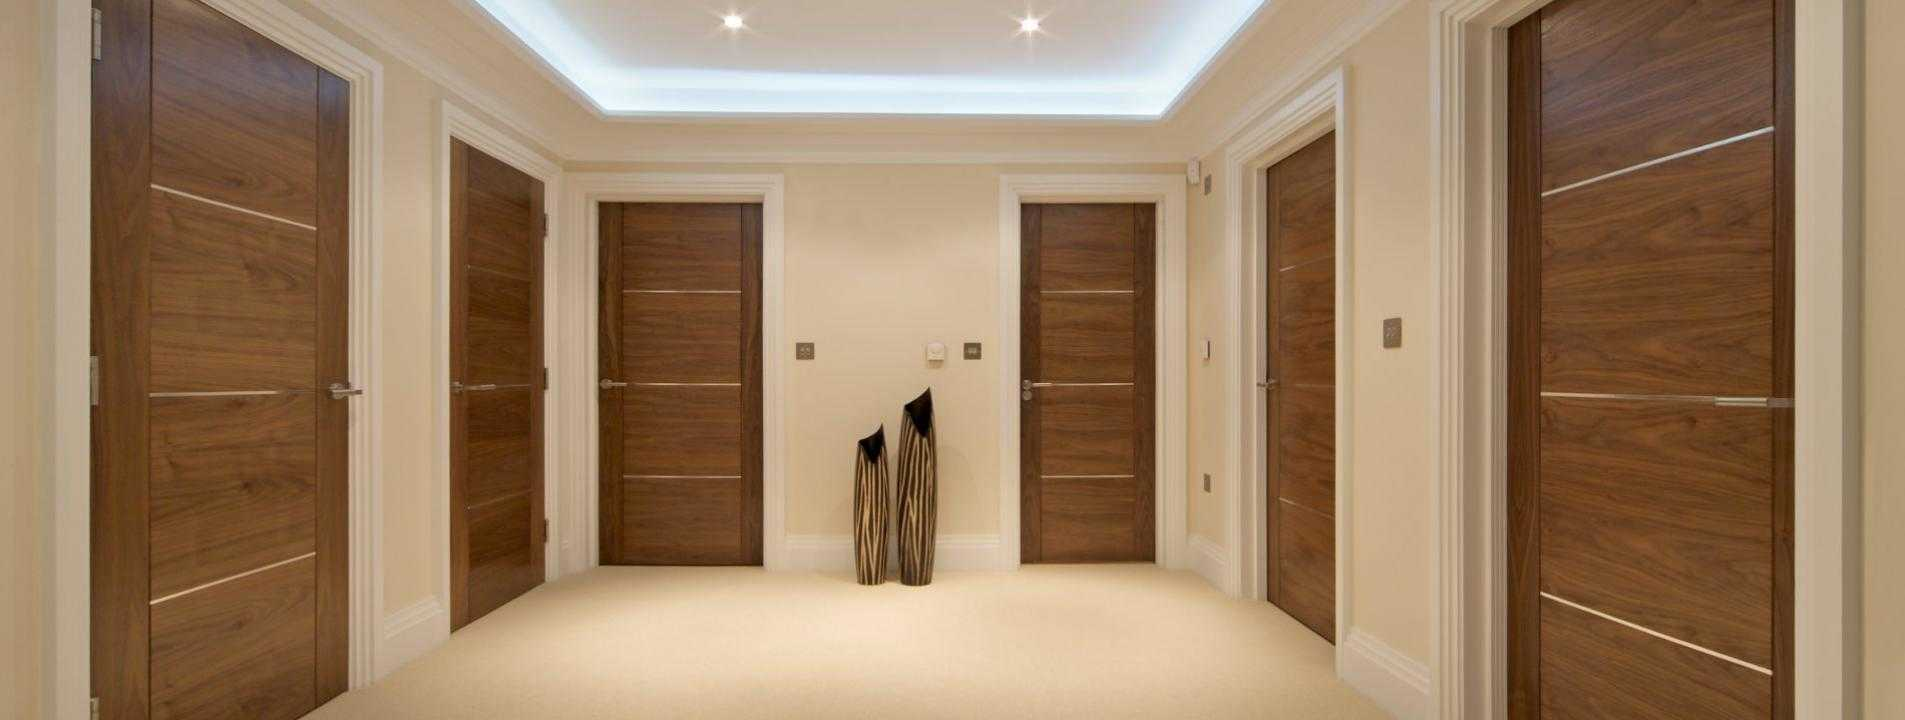 luxury internal doors fitted & Carpentry Joinery \u0026 Fitting Services in London - Solid Carpentry